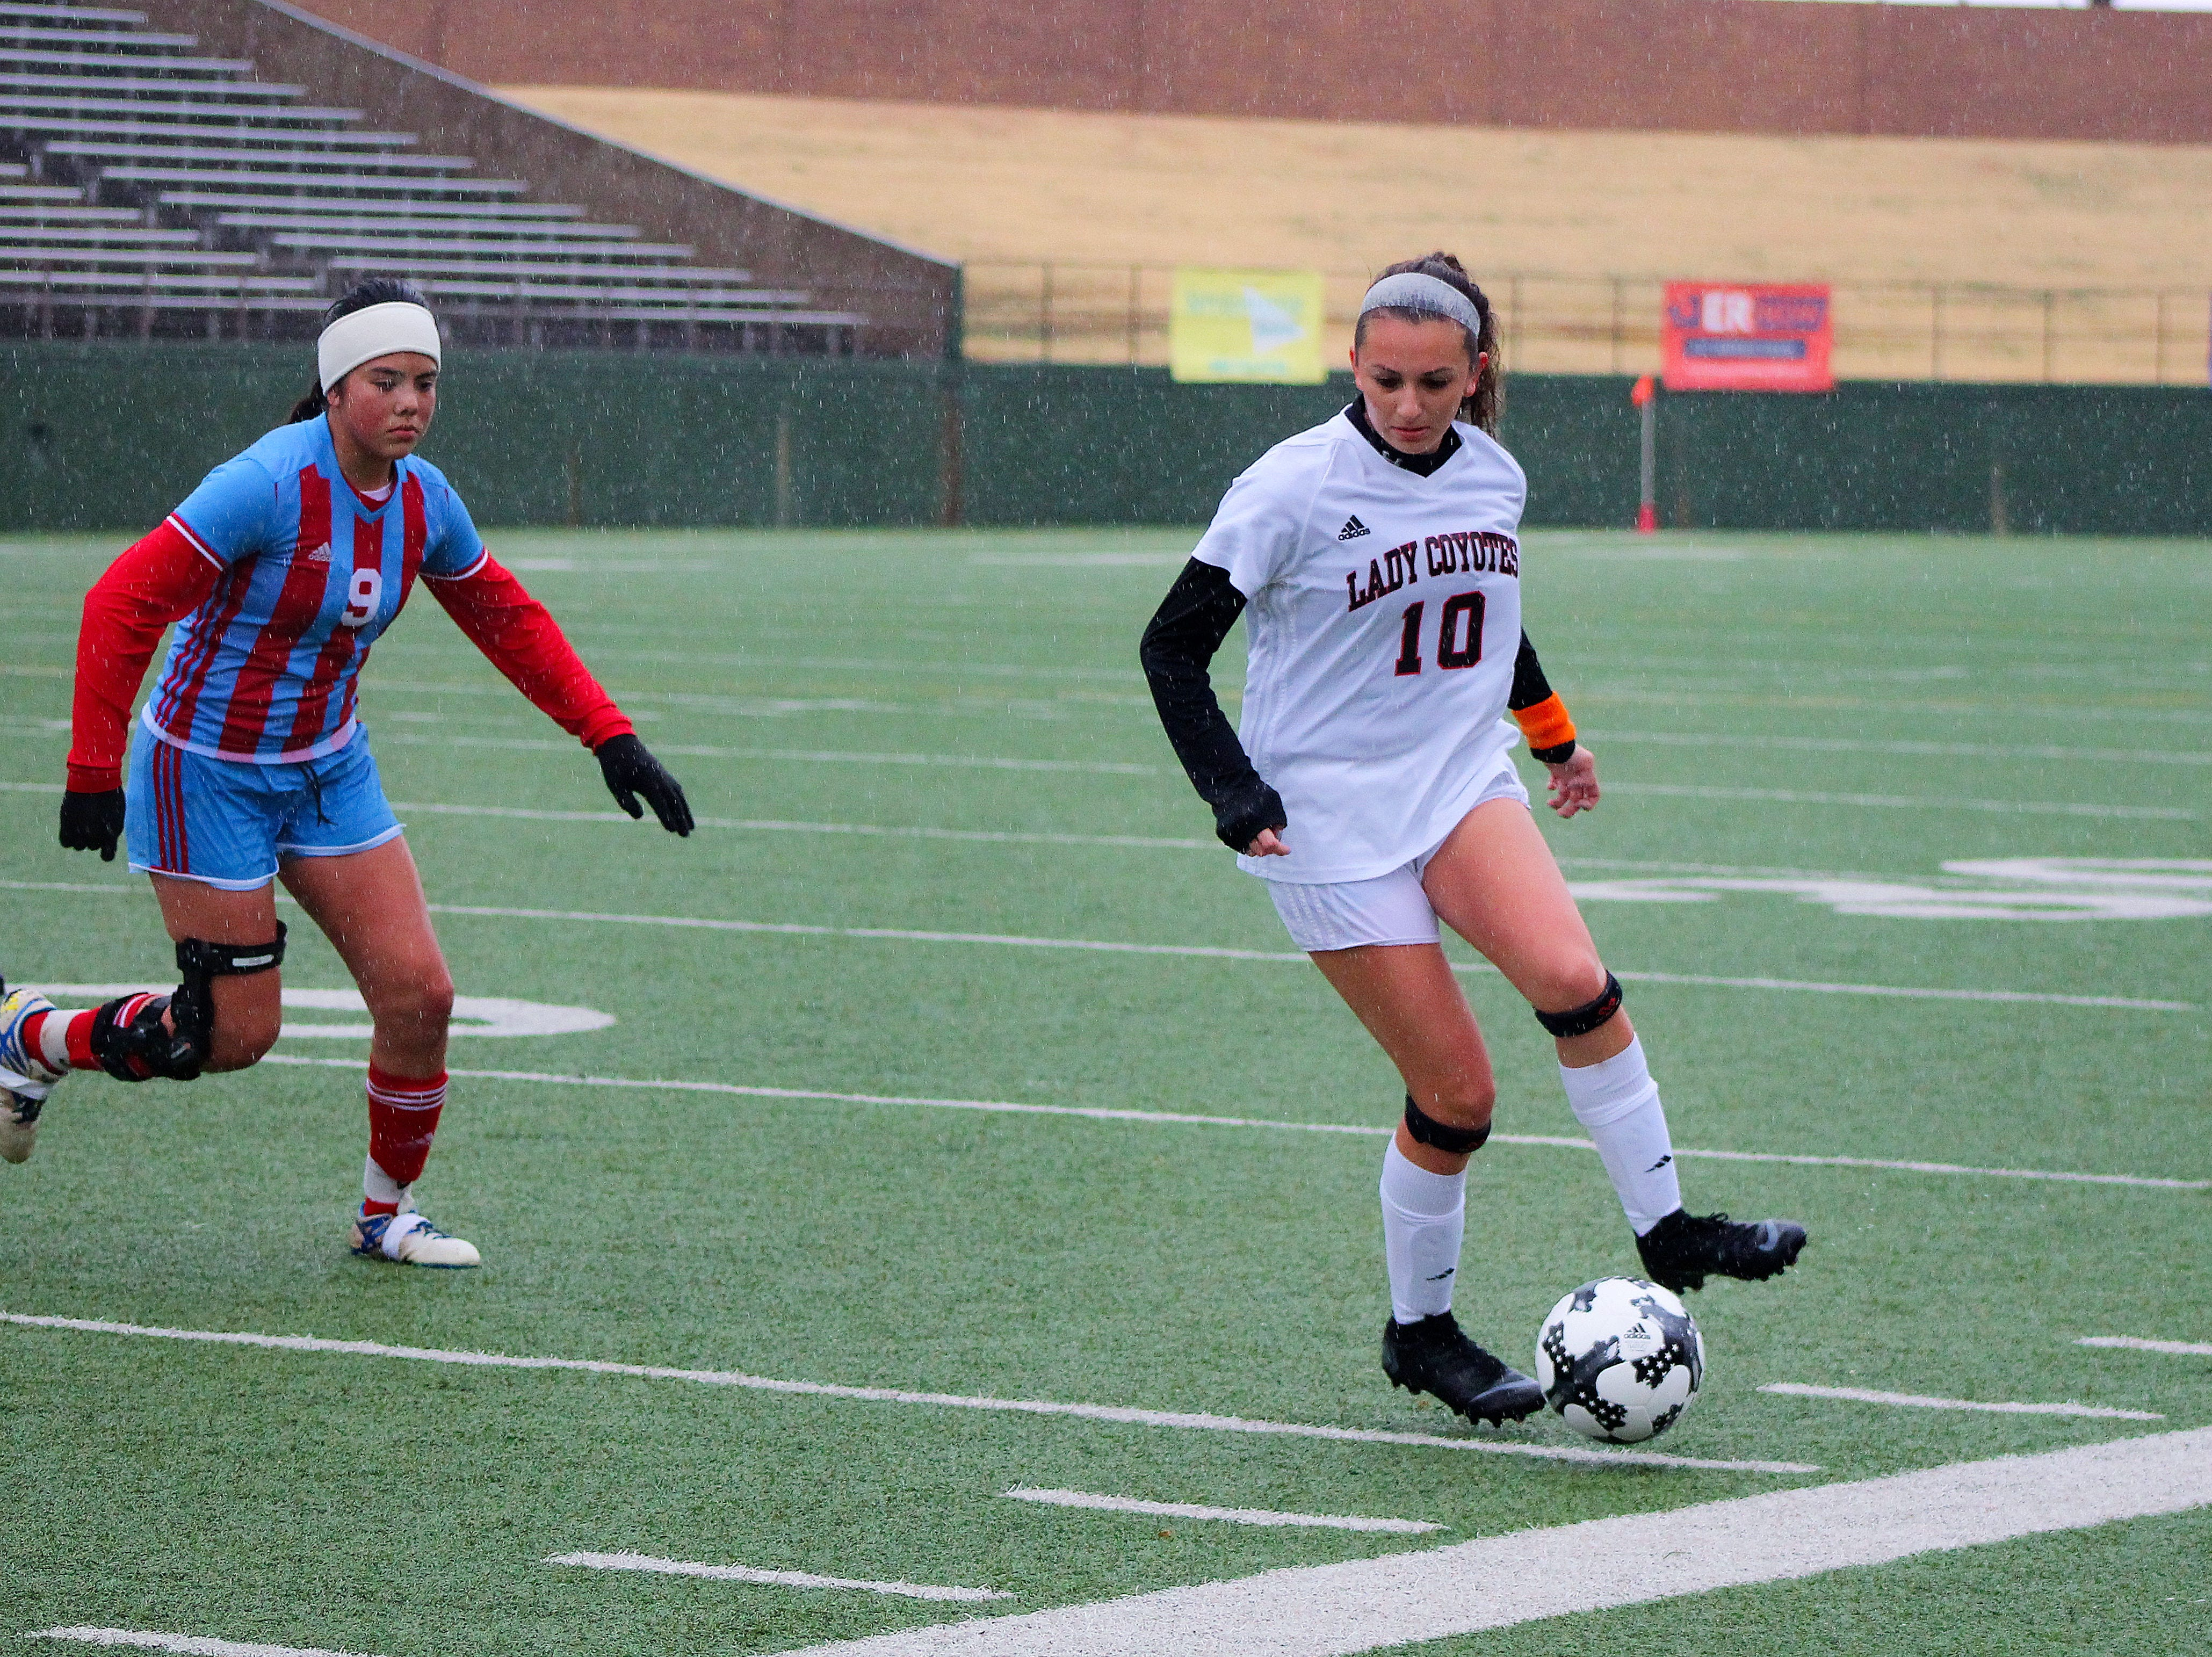 Old High's Alyssa Salinas dribbles the ball in the Coyotes 6-0 victory against the Hirschi Huskies.